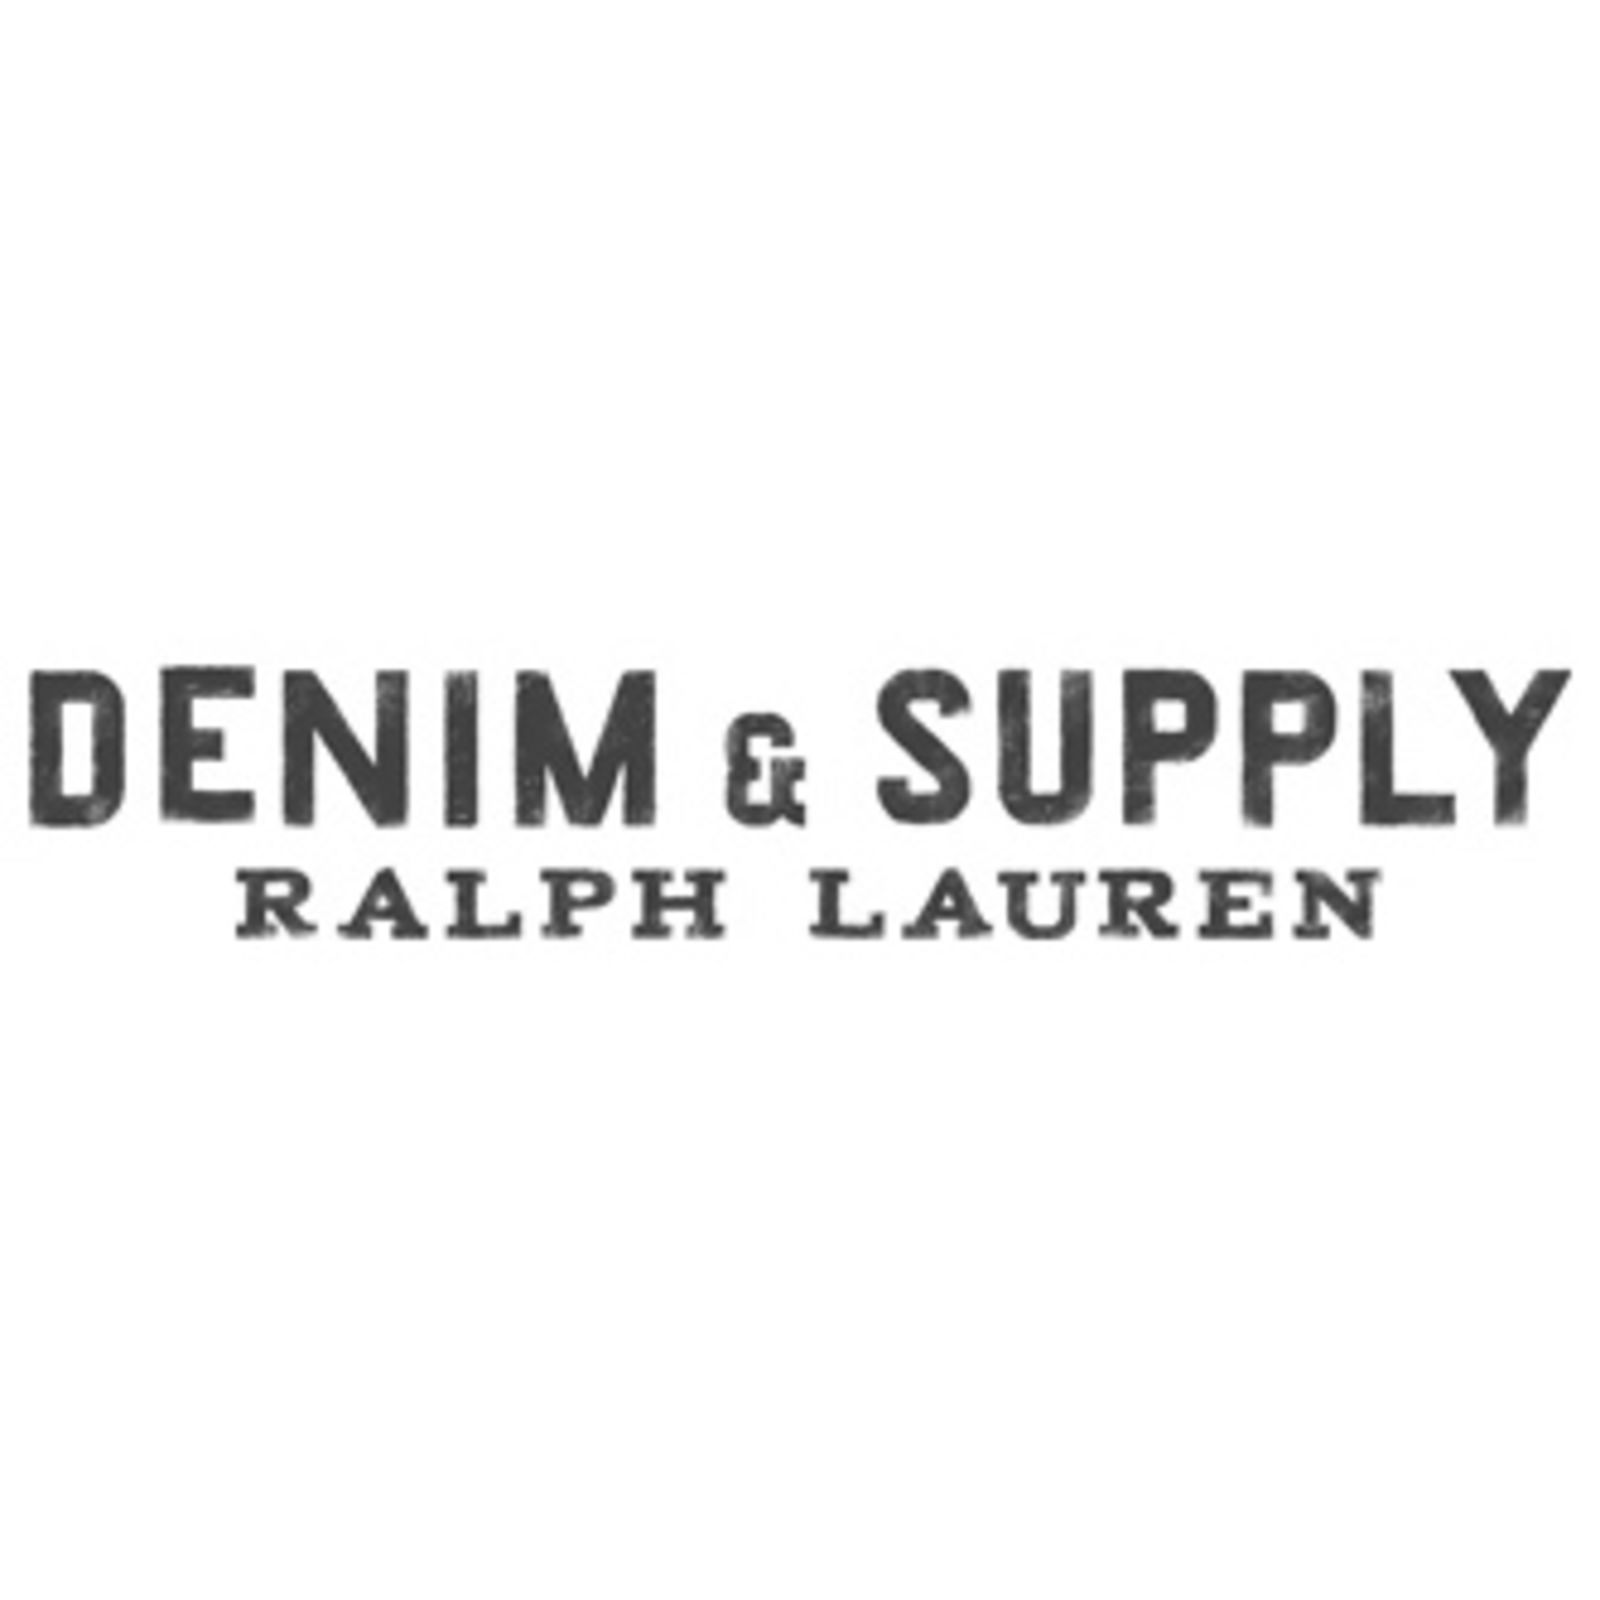 DENIM & SUPPLY